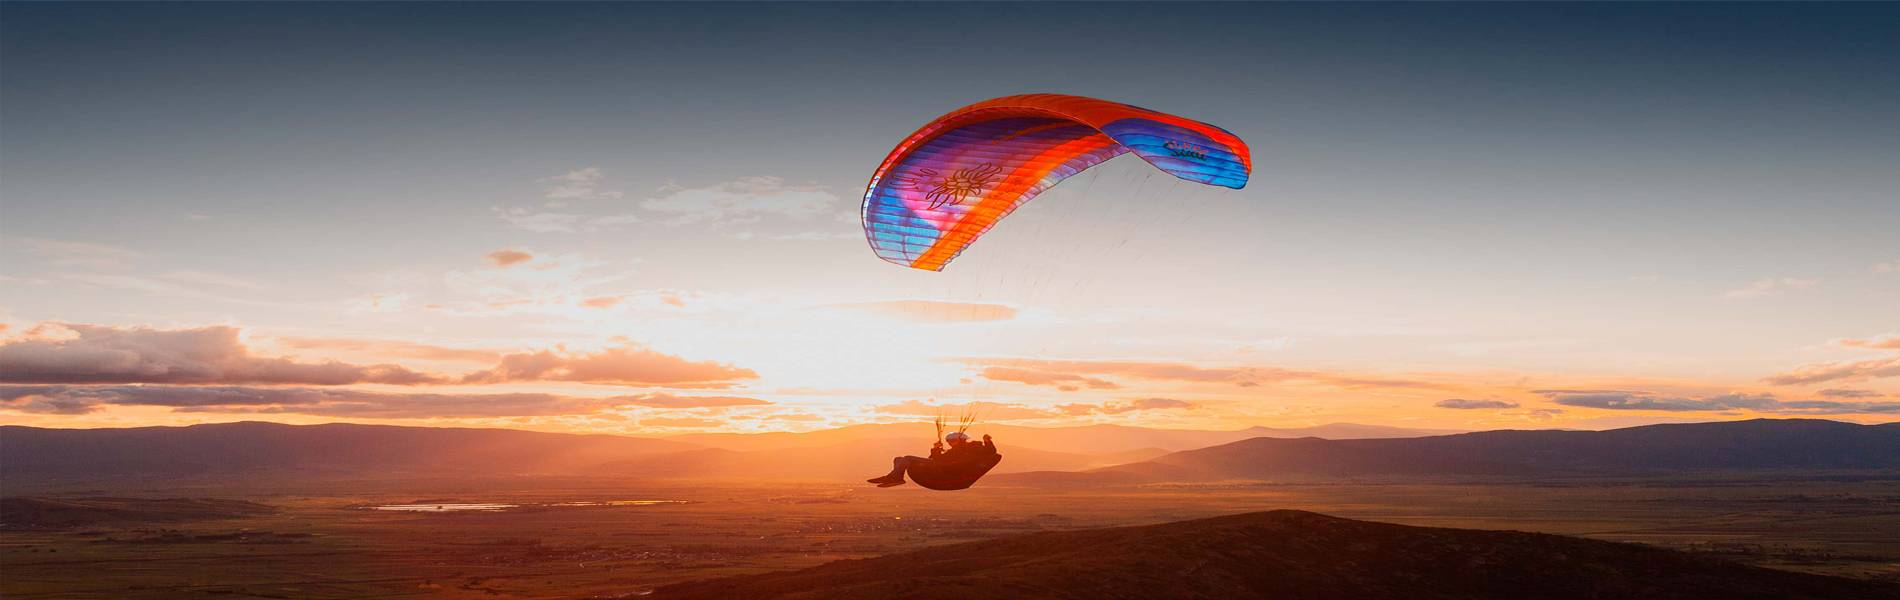 PARAGLIDING & ULTRA LIGHT